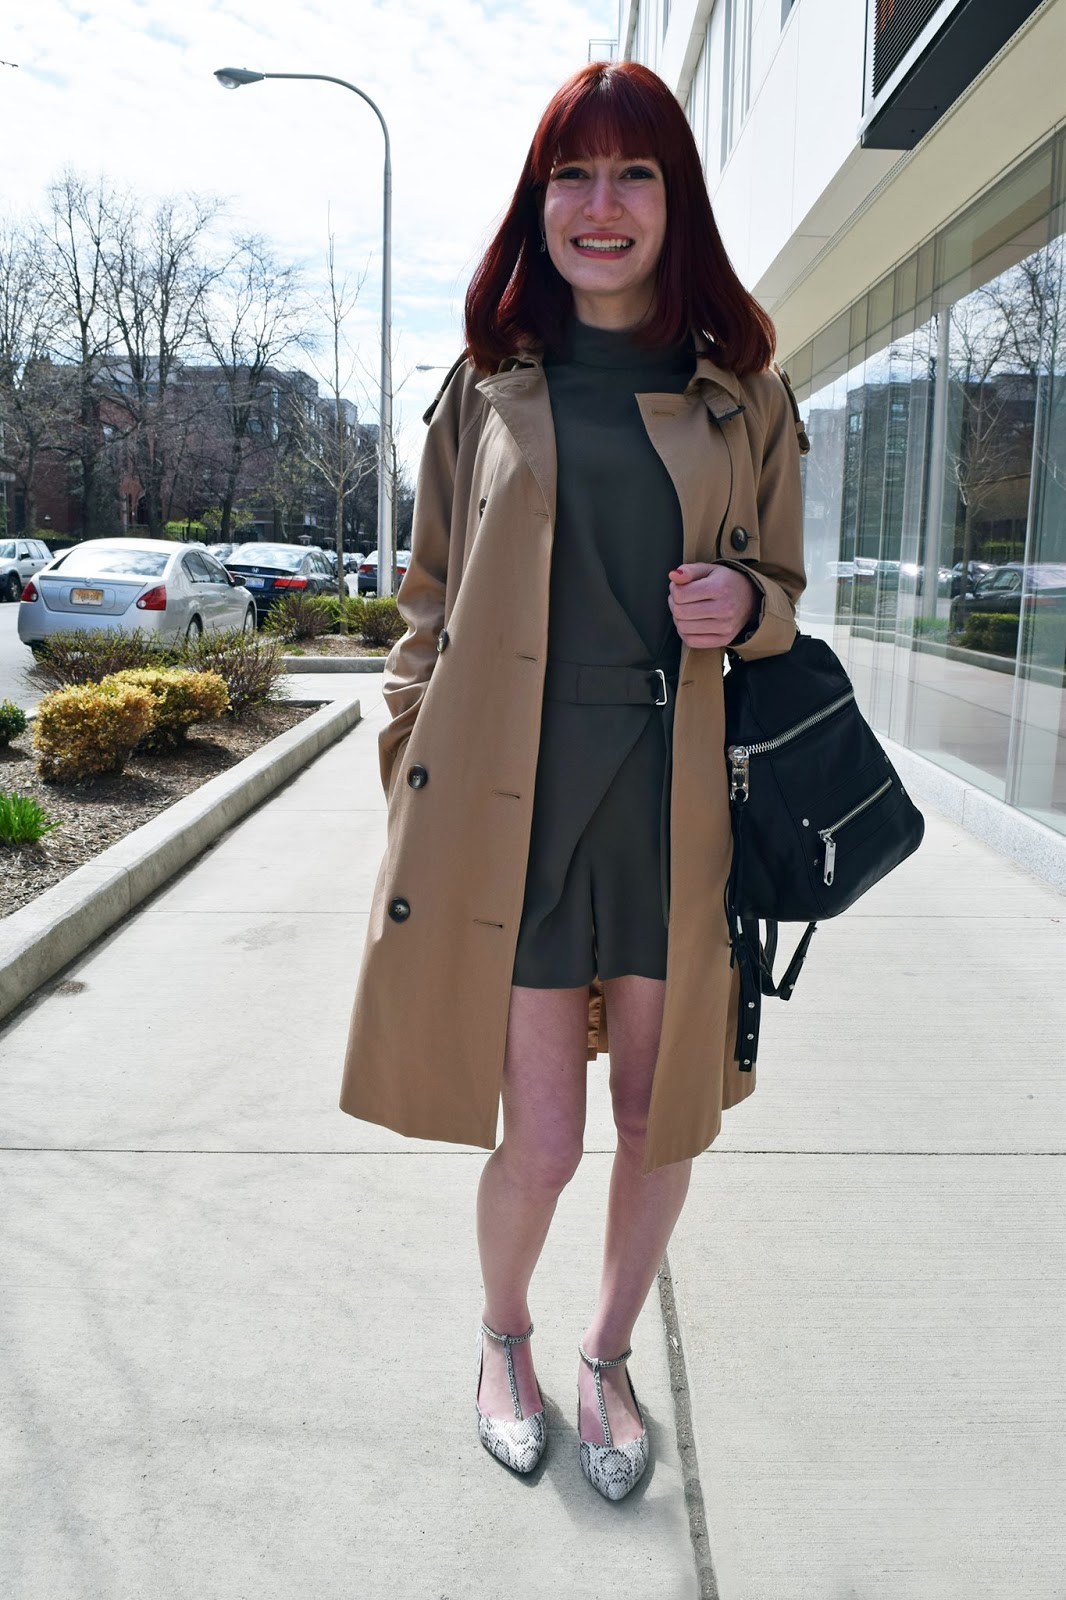 topshop d-ring romper, topshop trench coat, topshop flats, college fashionista depaul, leather milly backpack